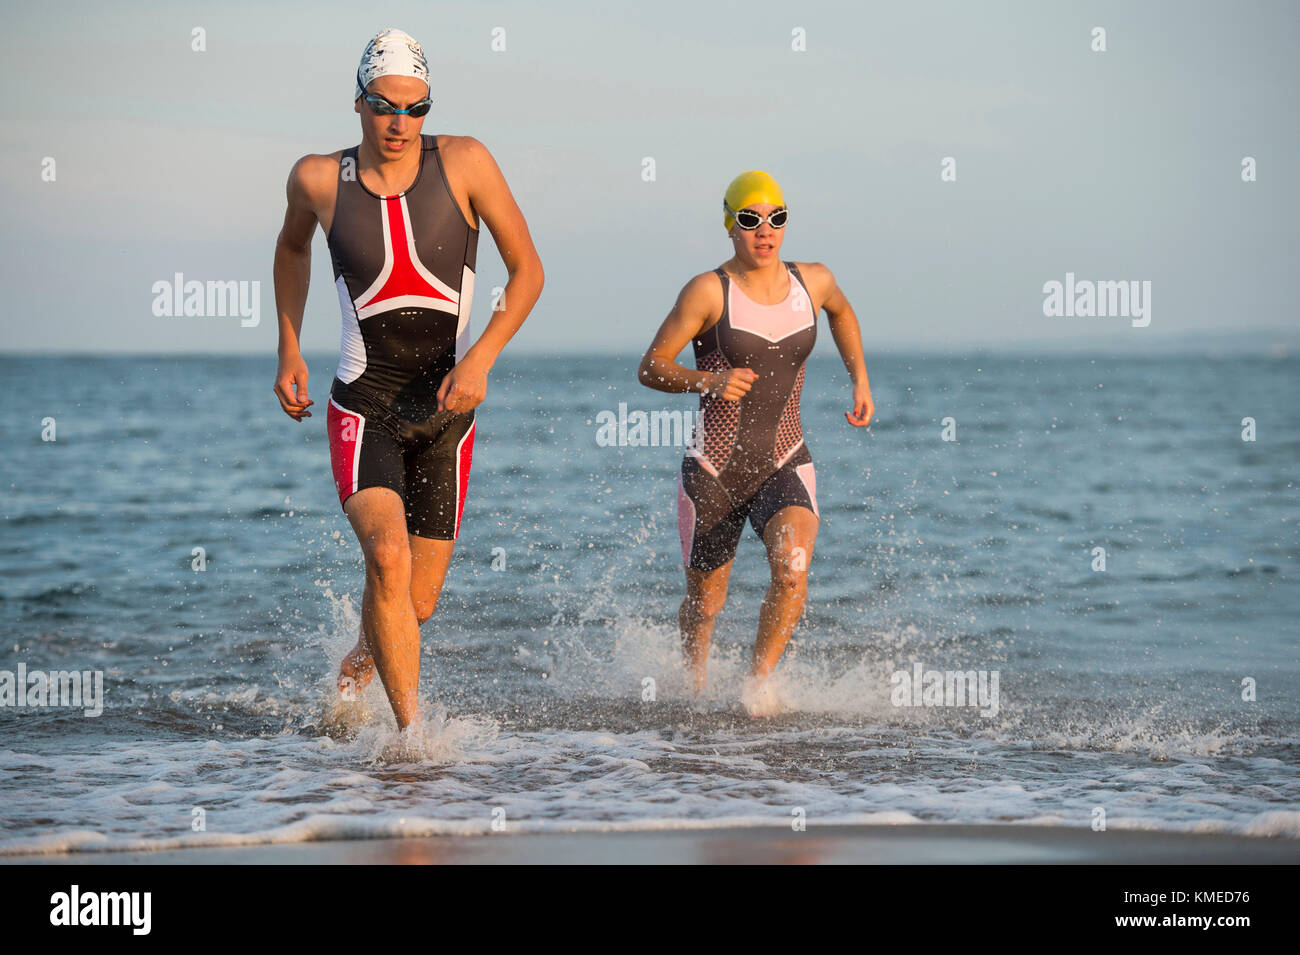 Two athletes running out of water during triathlon race,Veracruz,Mexico - Stock Image